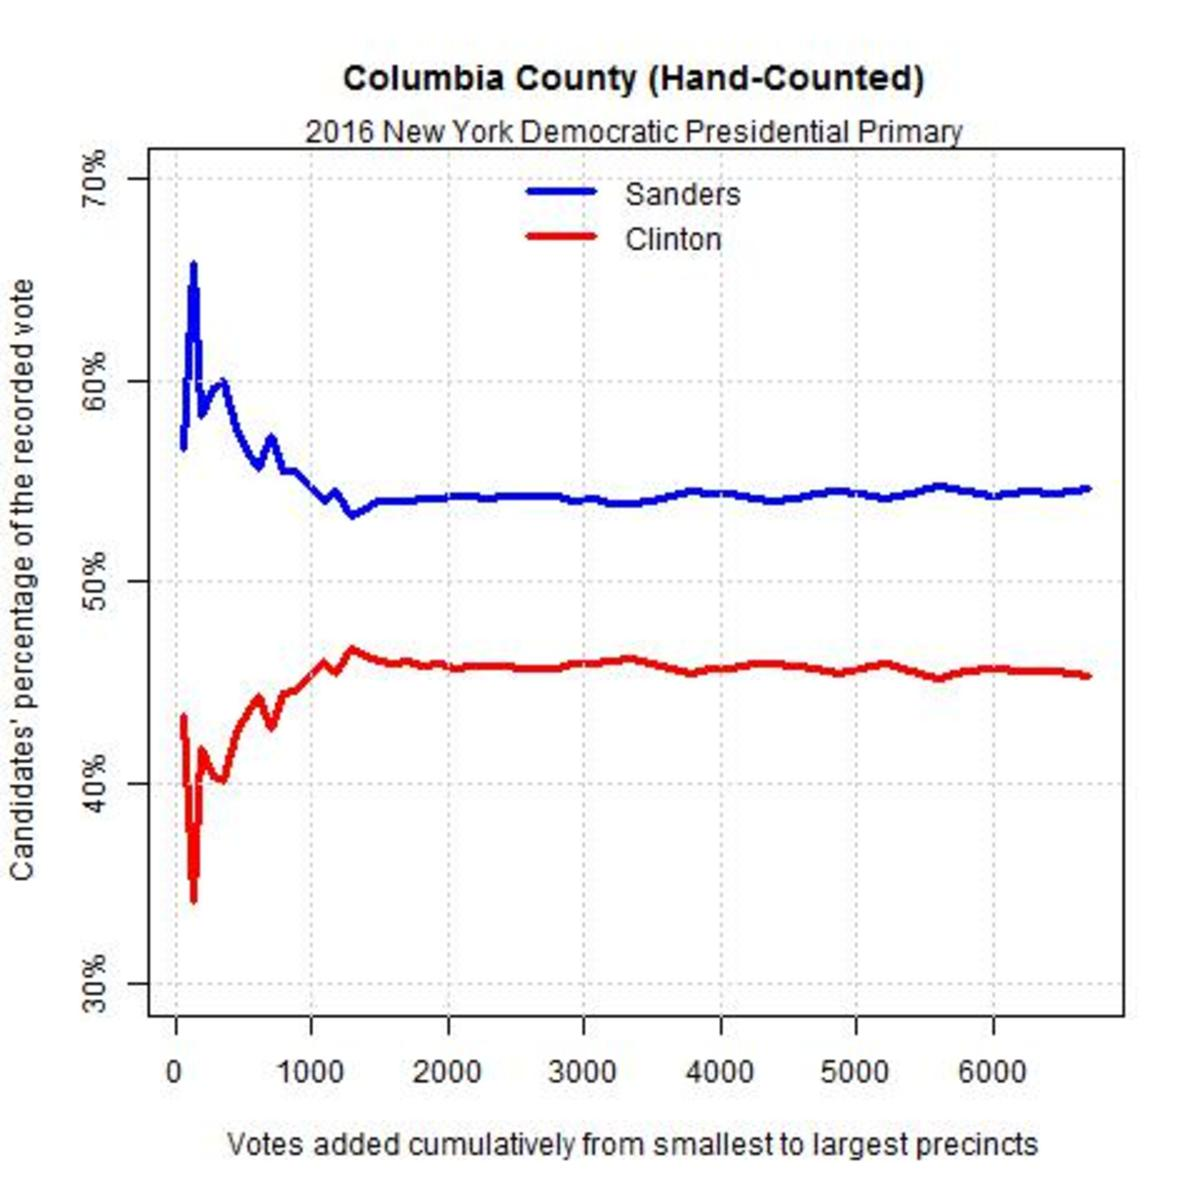 counties-which-use-hack-proof-systems-do-not-show-2016-vote-hacking-for-clinton